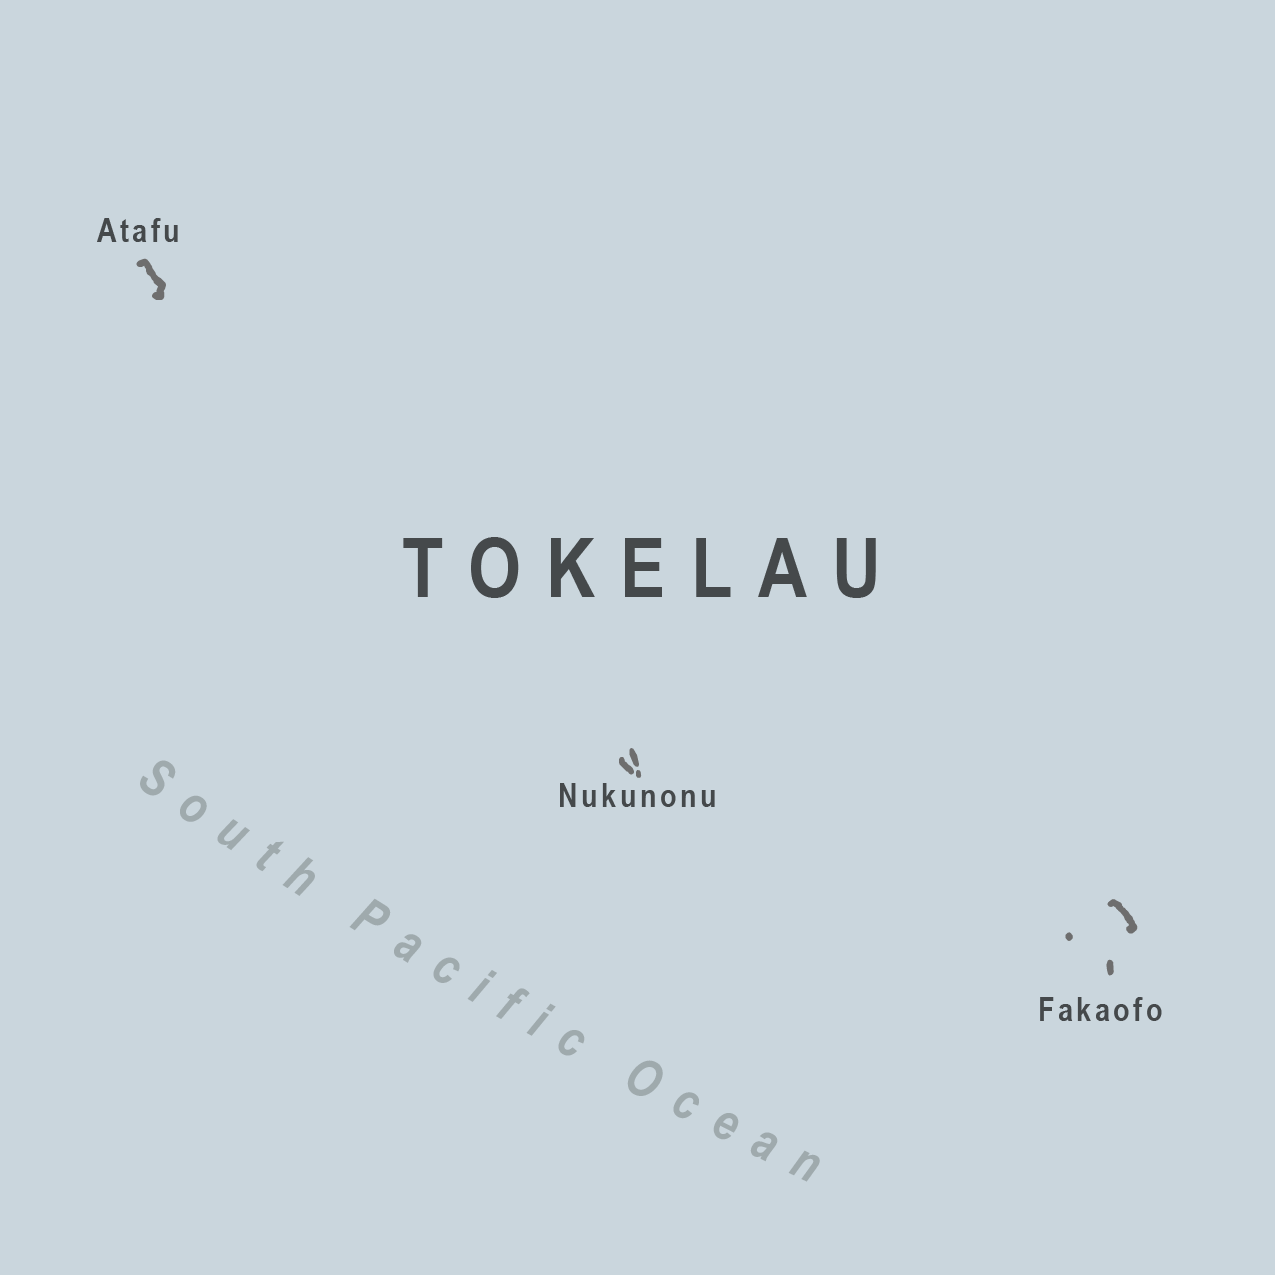 Health Information For Travelers To Tokelau New Zealand - Tokelau map